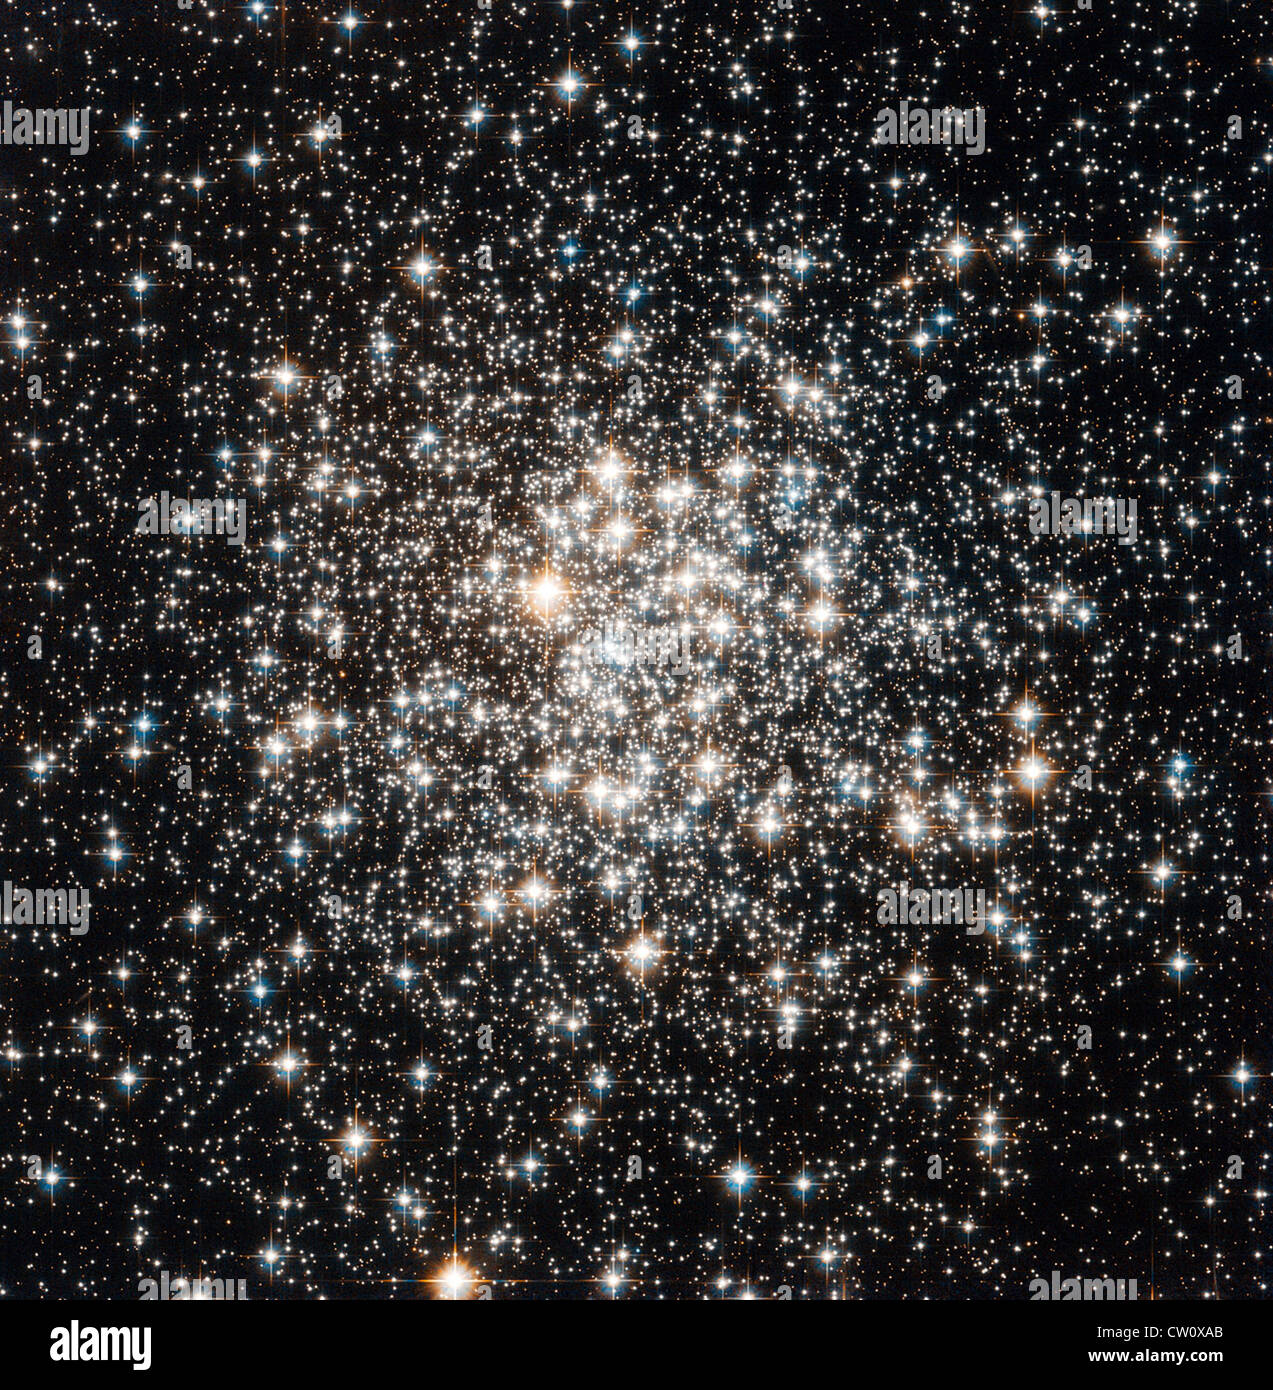 NASA/ESA Hubble Space Telescope has captured a crowd of stars known as Messier 107  in the constellation of Ophiuchus - Stock Image